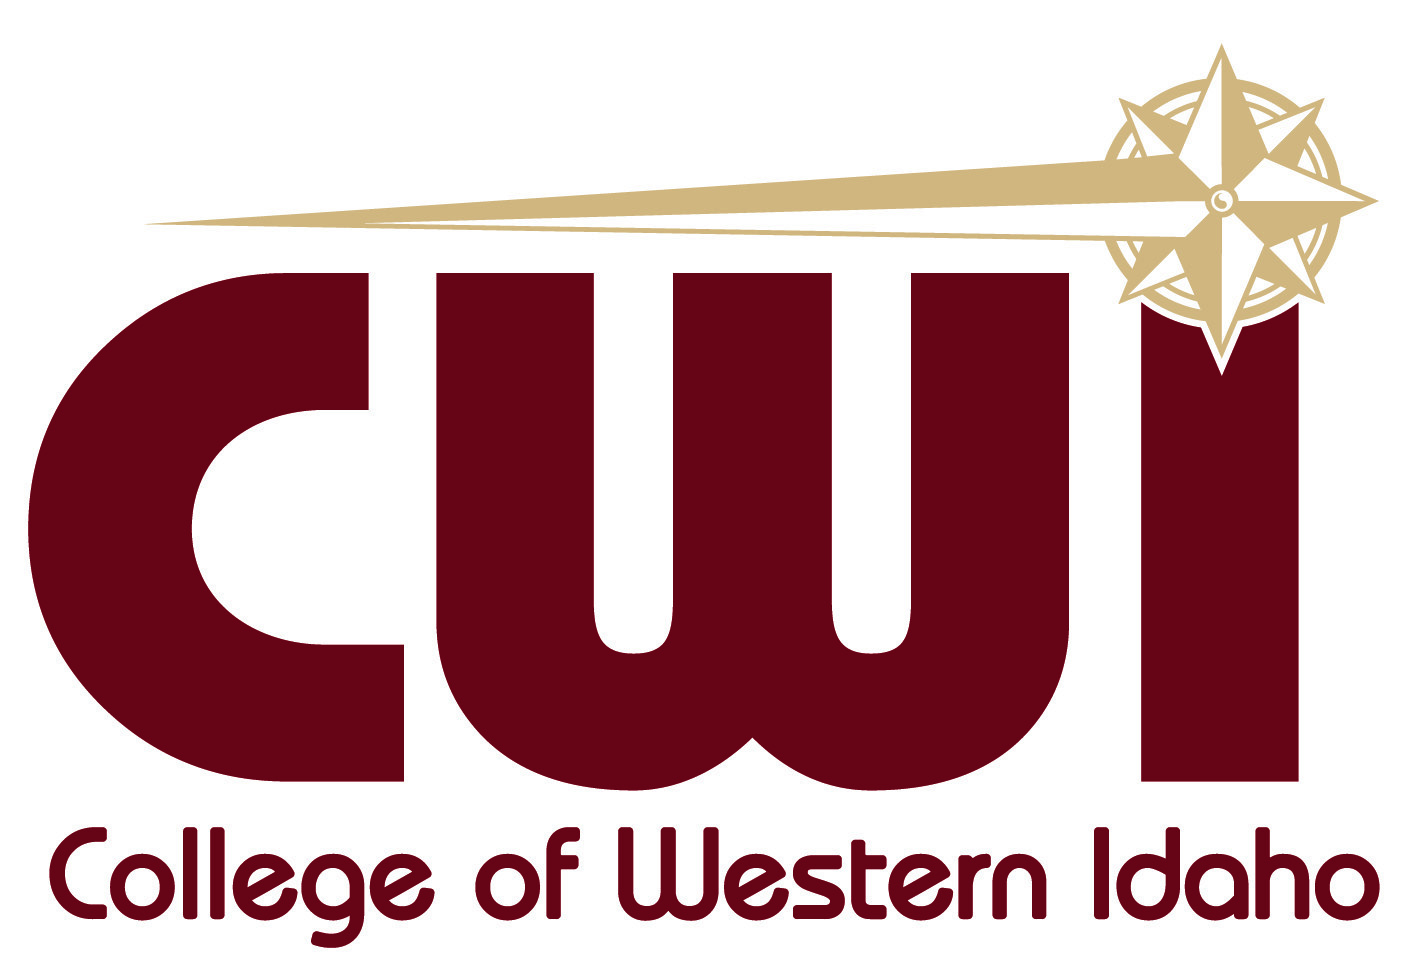 College of Western Idaho image